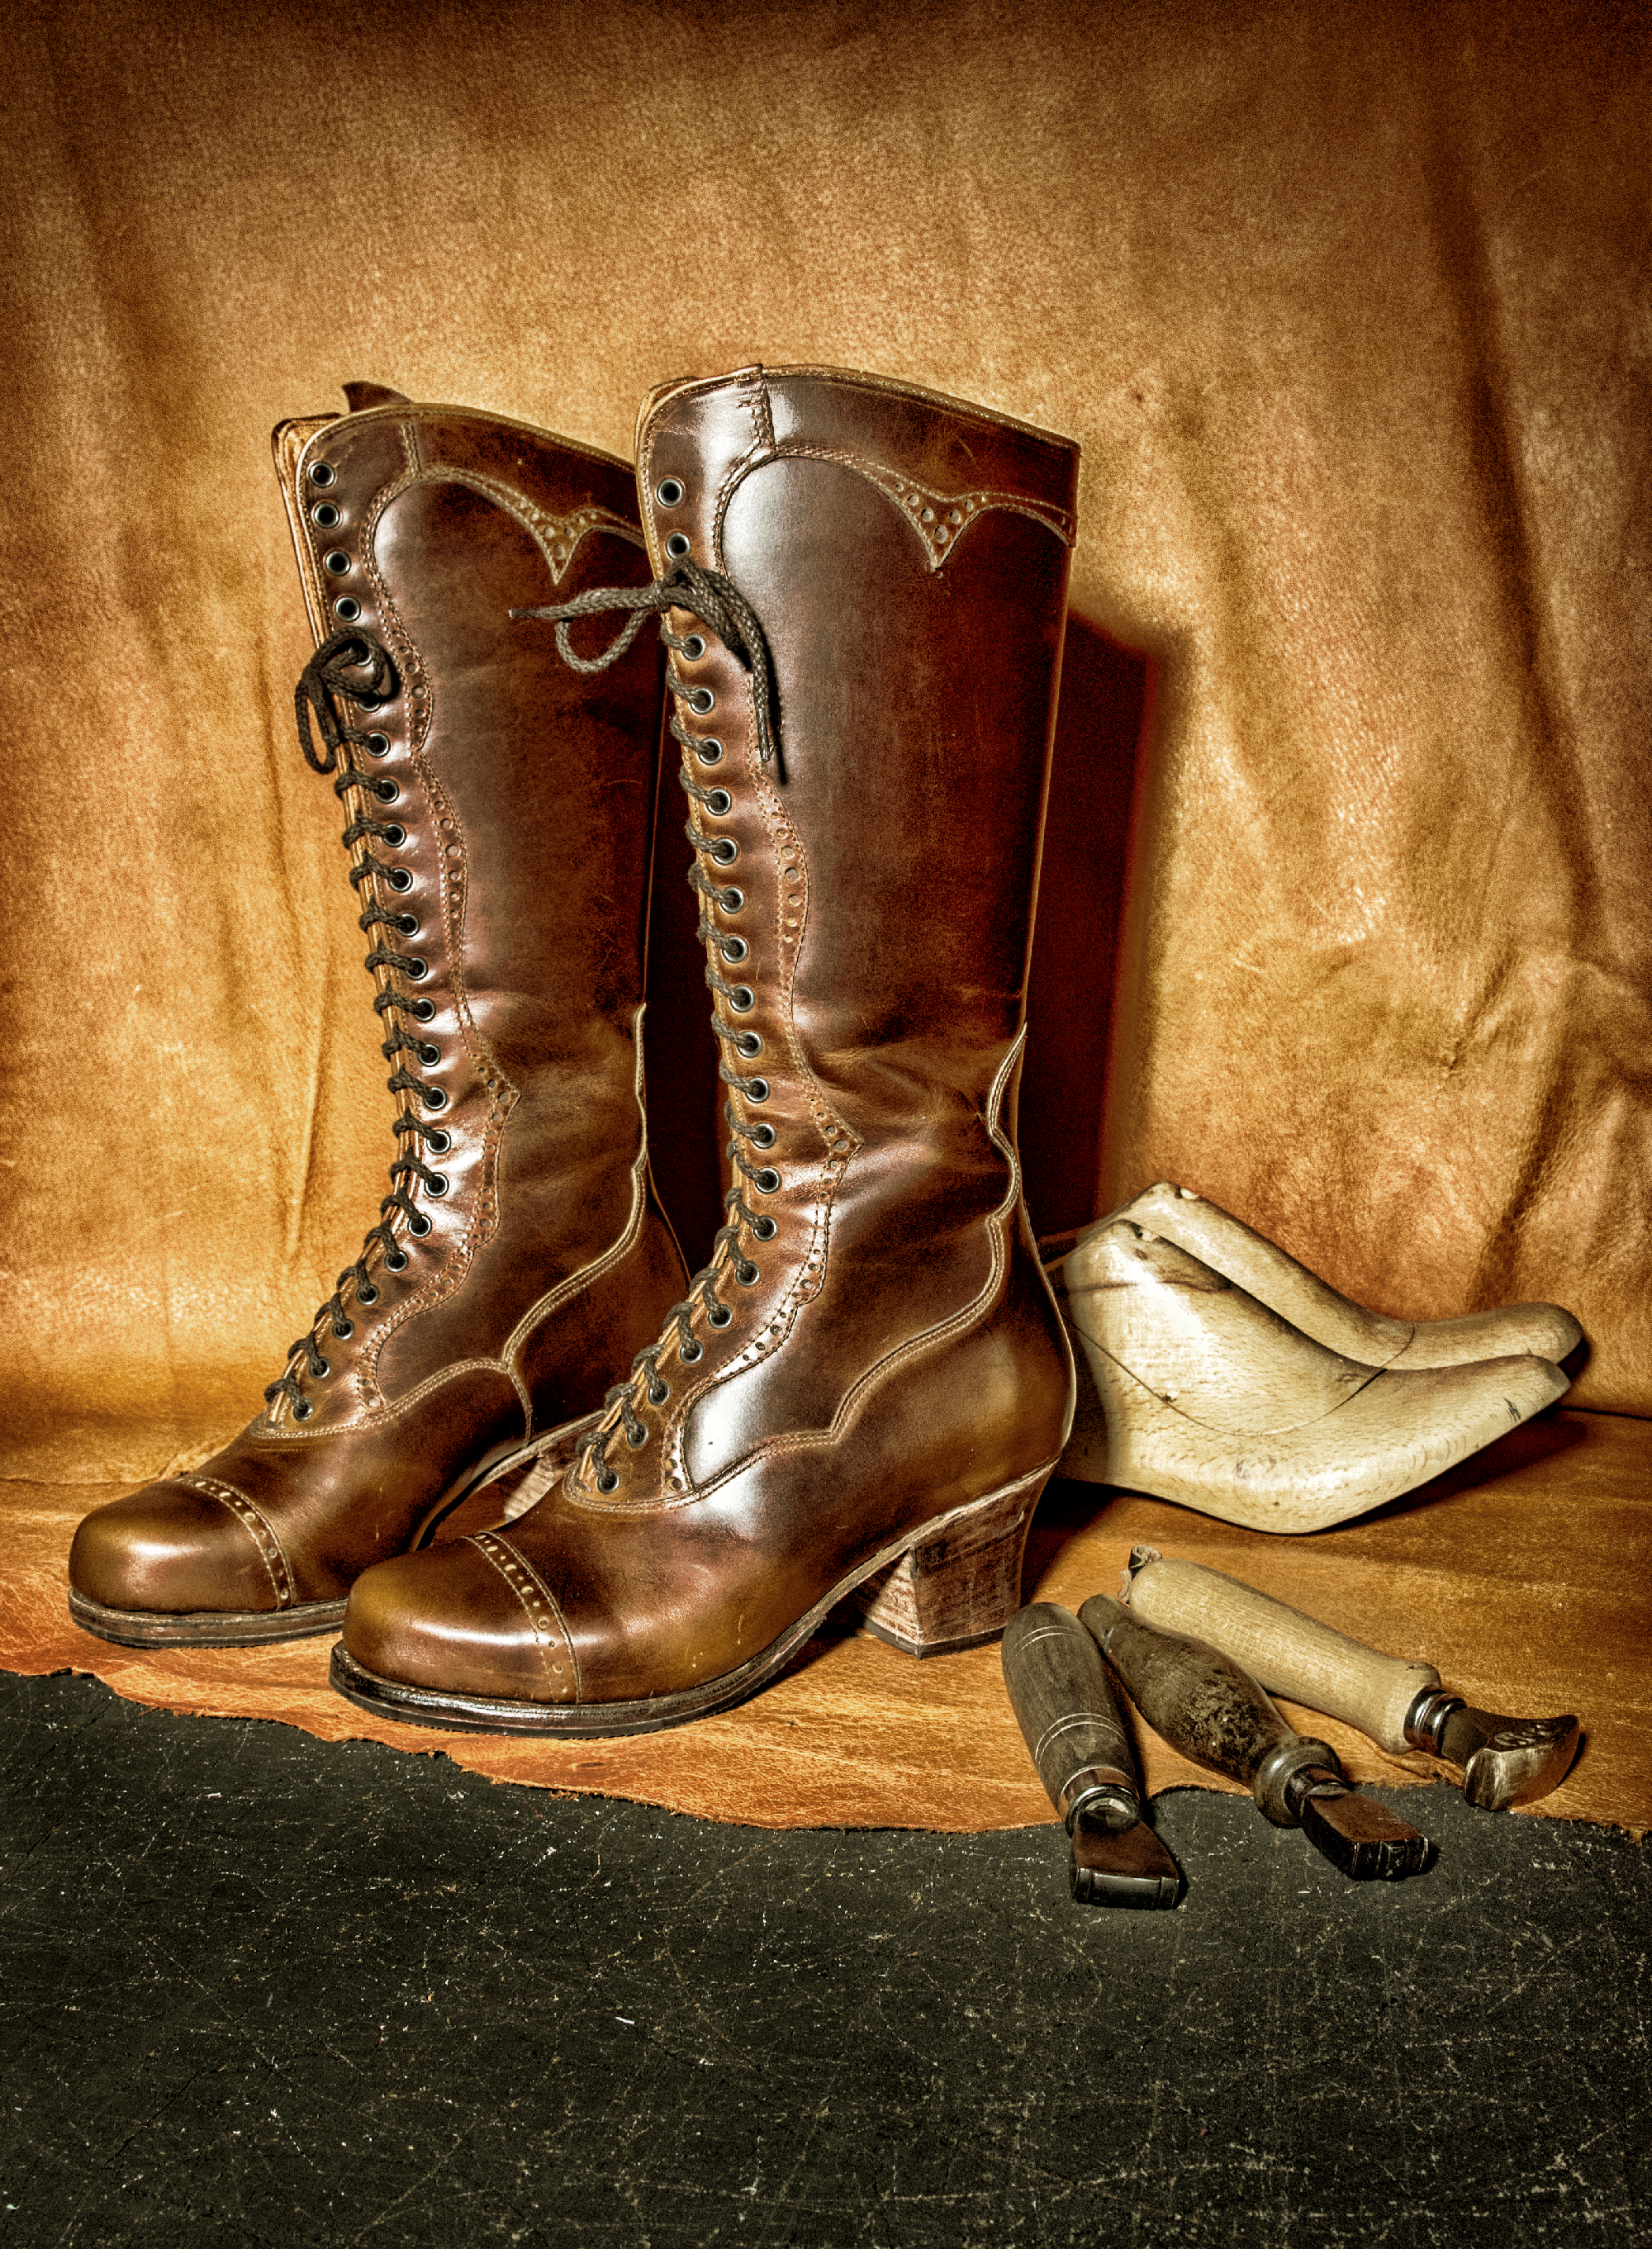 1919 repro boots by Mittajalkine